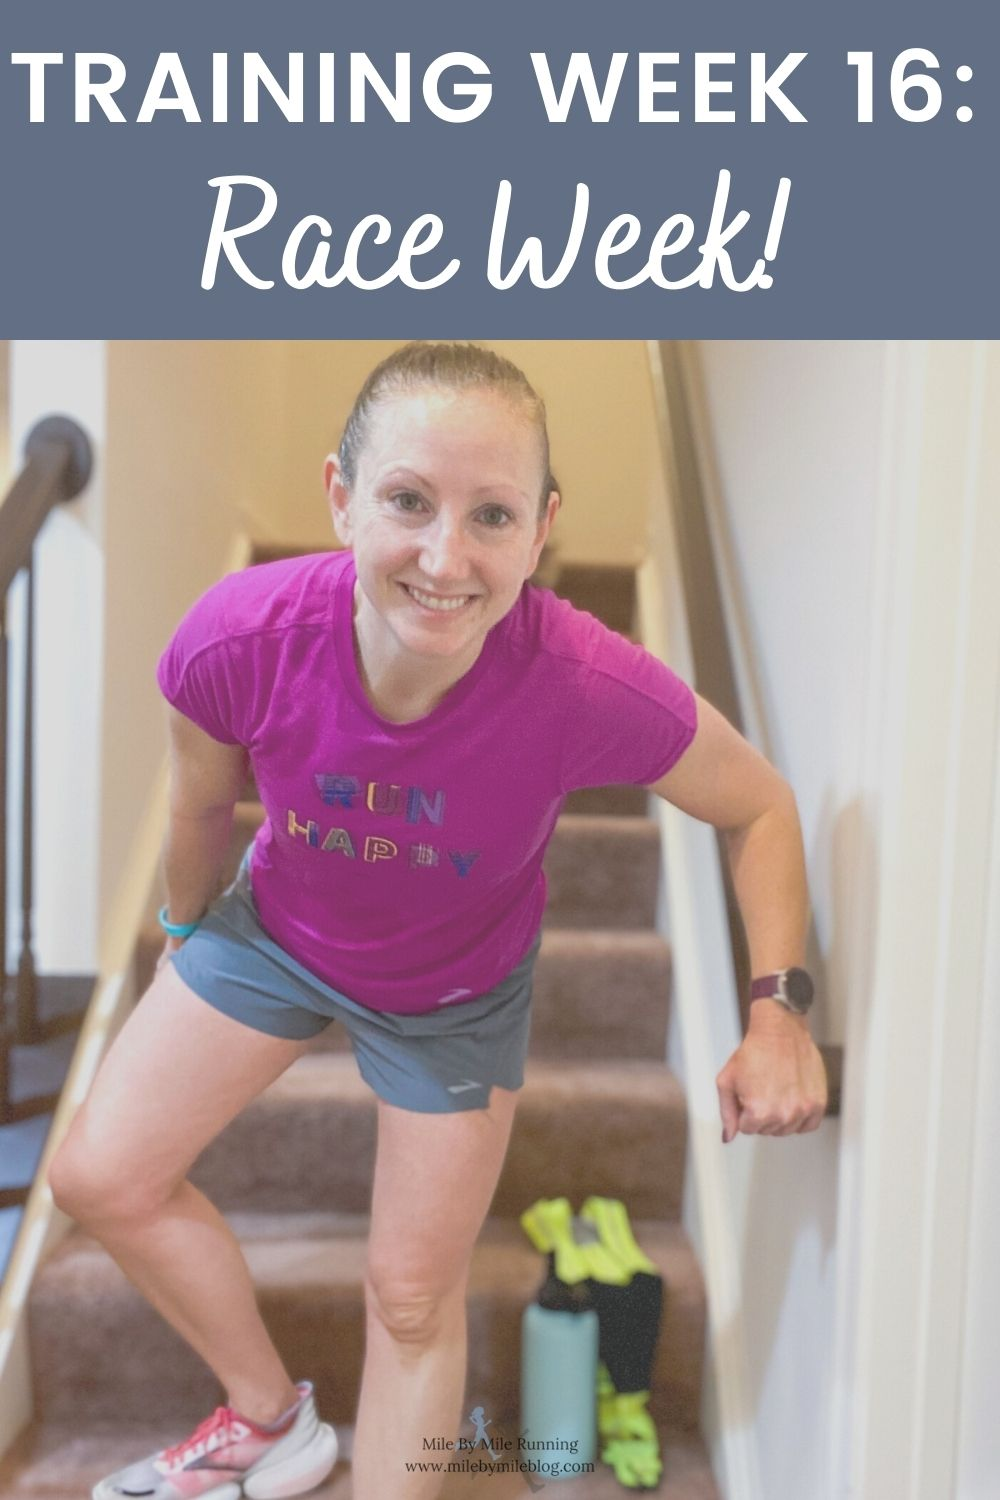 Somehow, after 16 weeks of training, it is already race week! I'm drafting this before my race and will just try to pop in Saturday afternoon to add some last minute updates. Hopefully by the time this goes live the race will successfully by completed! Let's take a look at training week 16: race week!